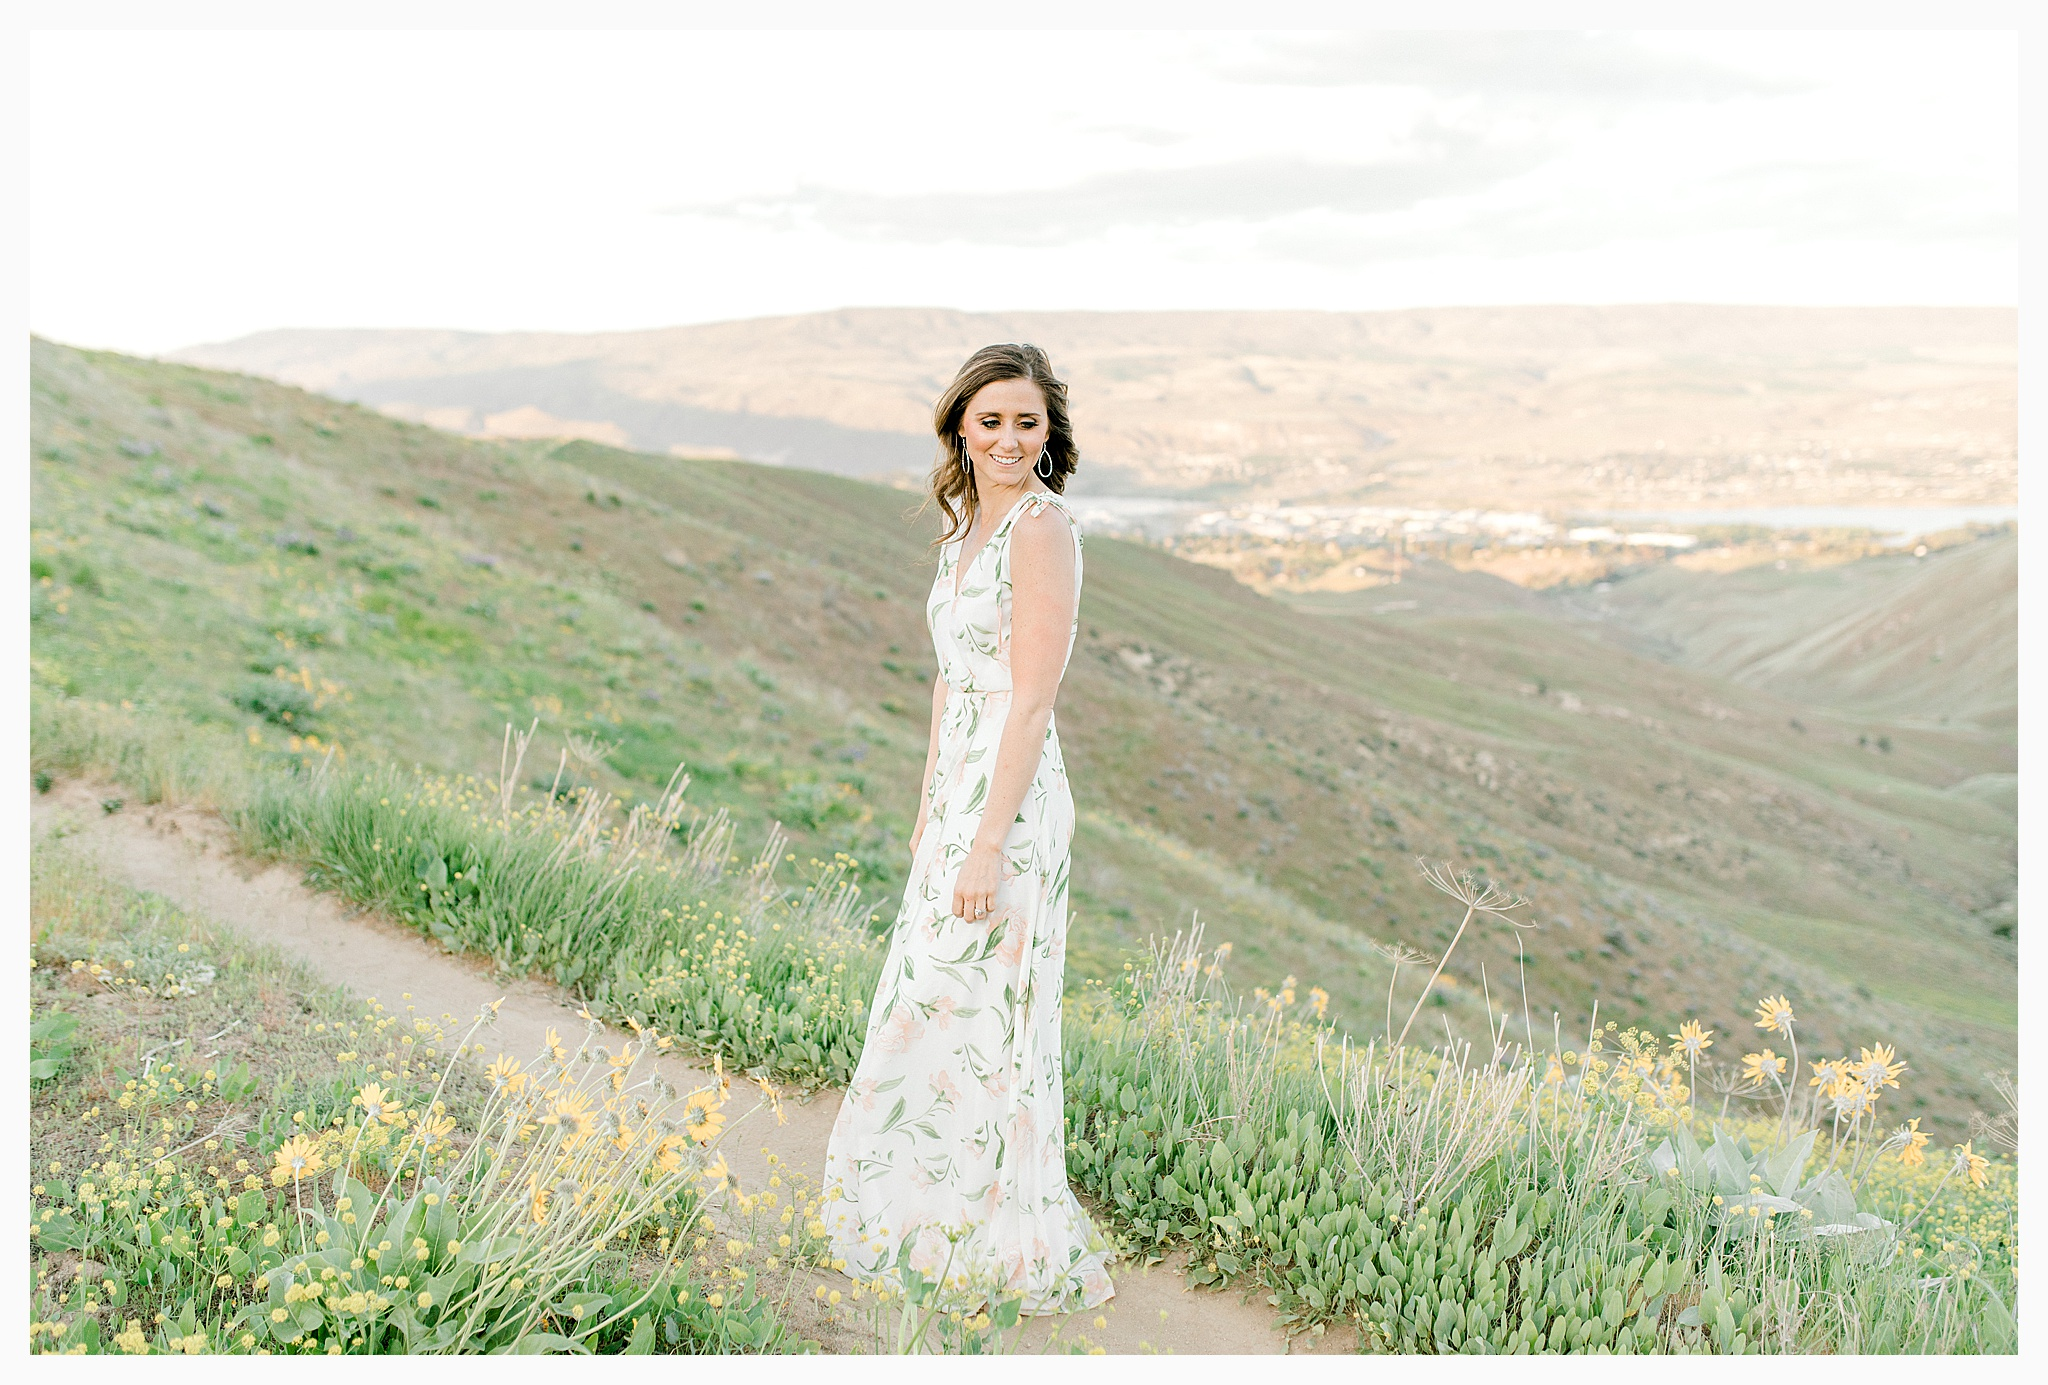 Engagement session amongst the wildflowers in Wenatchee, Washington | Engagement Session Outfit Inspiration for Wedding Photography with Emma Rose Company | Light and Airy PNW Photographer, Seattle Bride_0016.jpg